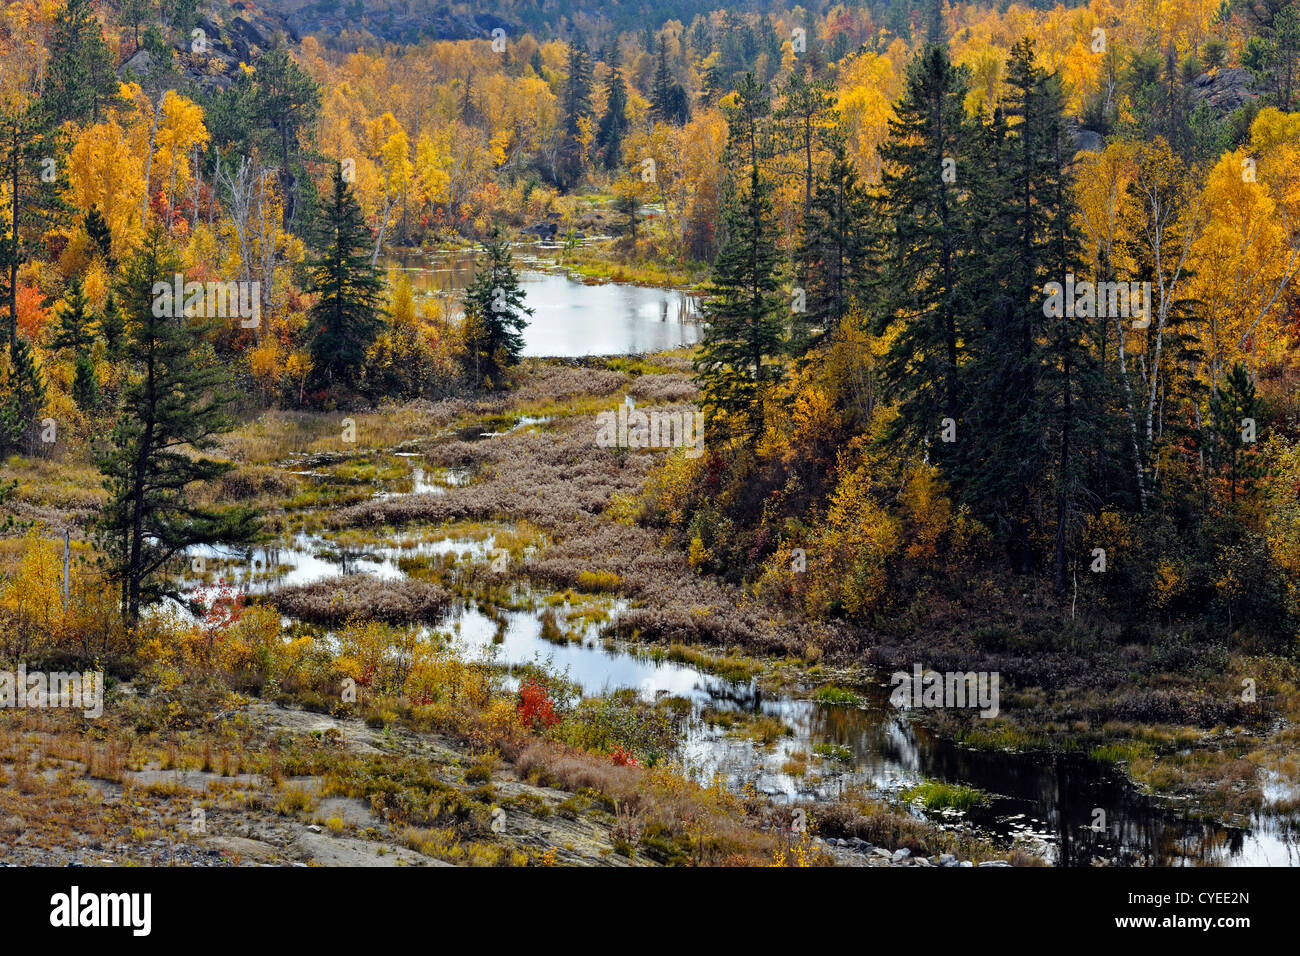 Aspens, birches and spruces along beaver pond channel, Greater Sudbury, Ontario, Canada - Stock Image